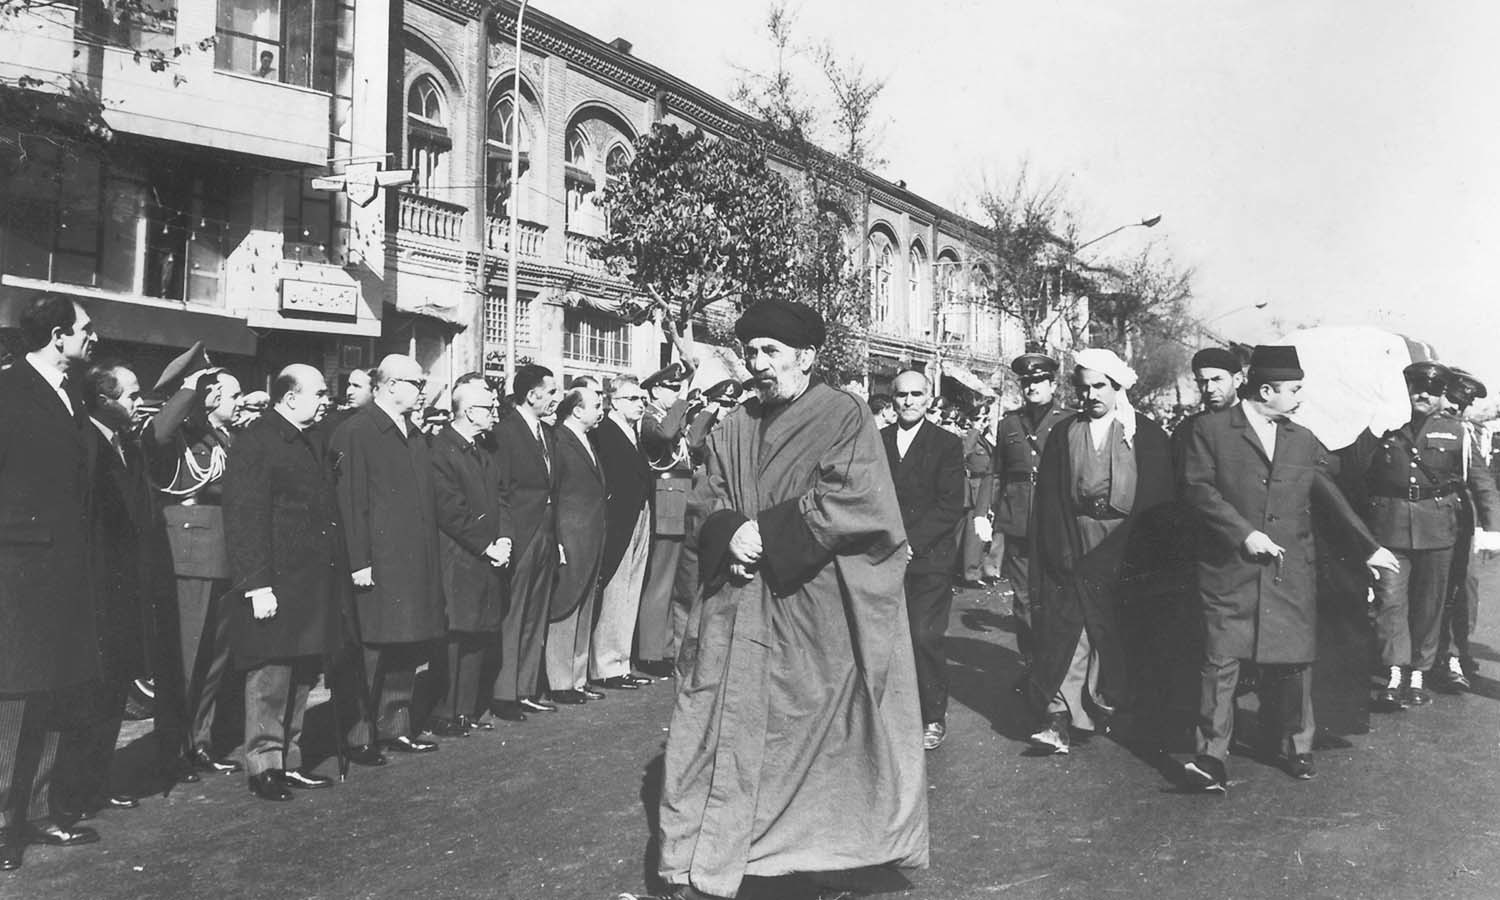 Iranian Foreign Minister Ardeshir Zahedi (extreme left) and Prime Minister Amir-Abbas Hoveyda (fourth from left) standing to join in the funeral procession of President Iskander Mirza . | Photo: The Iskander Mirza Family Collection, Karachi